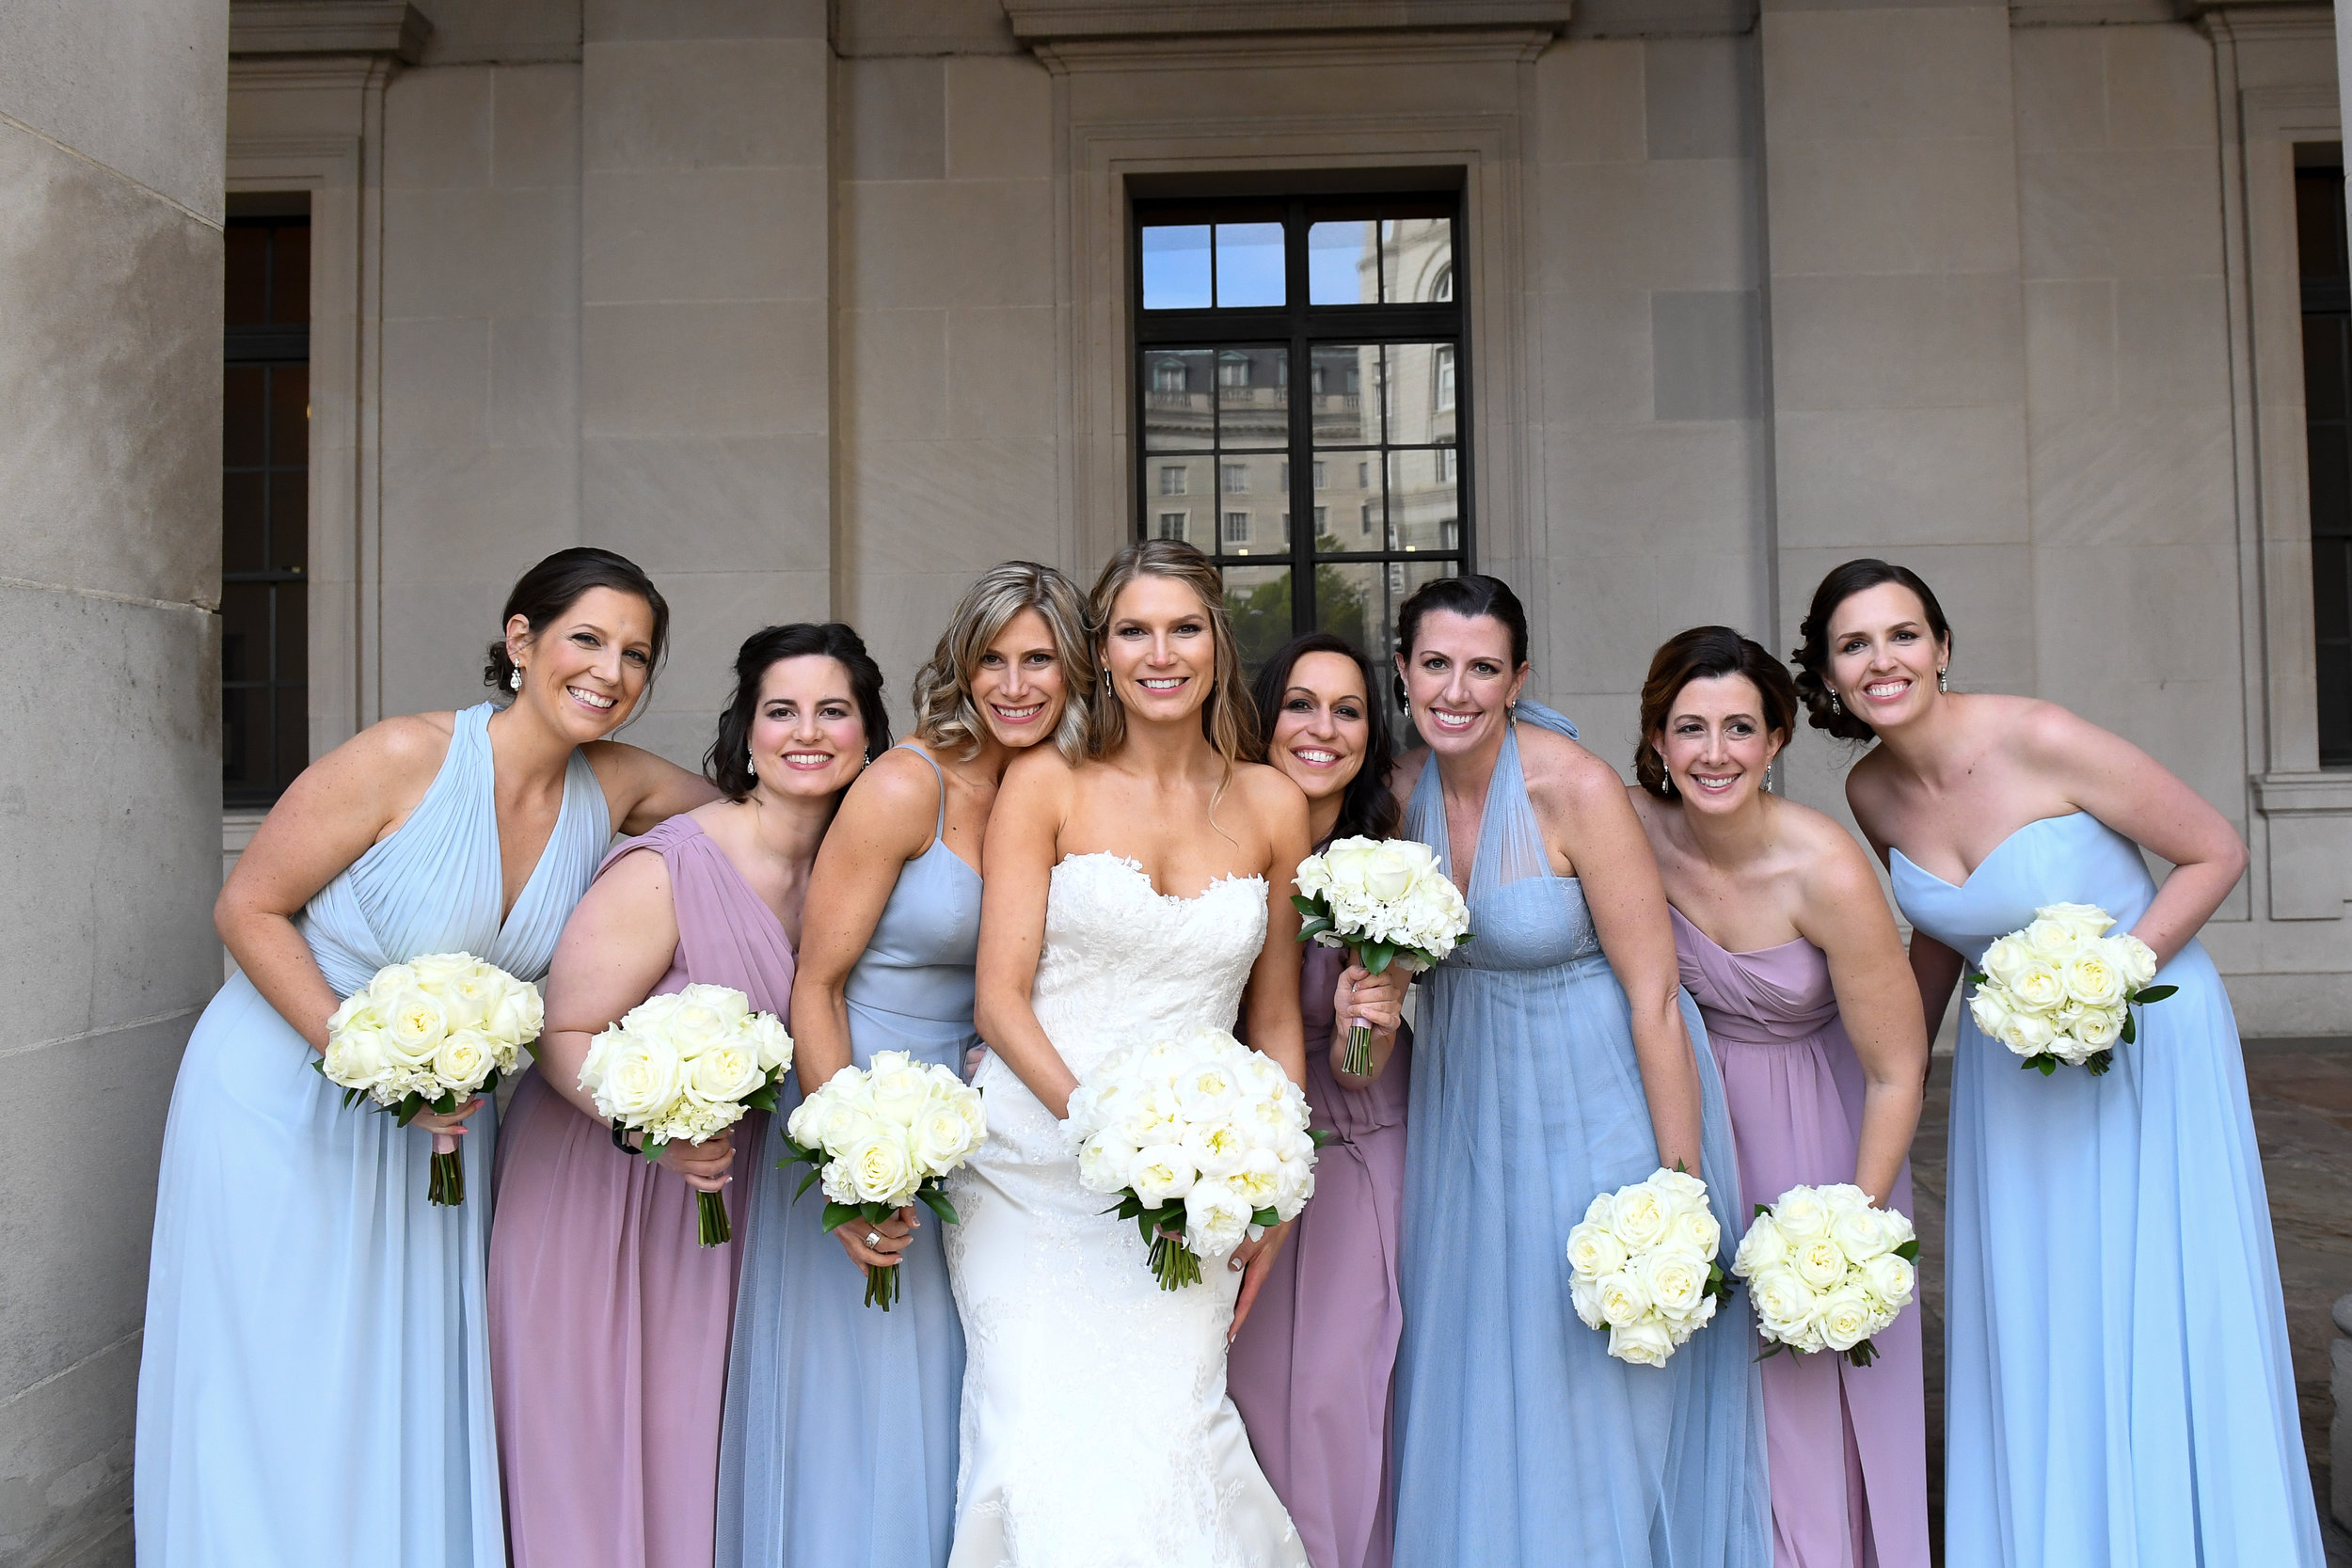 Atelier Ashley Flowers + Erin Tetterton Photography  + Bridal bouquet + bridesmaids bouquets + dusty blue + dusty mauve + all rose bouquet + National  Press Club + Gonzaga